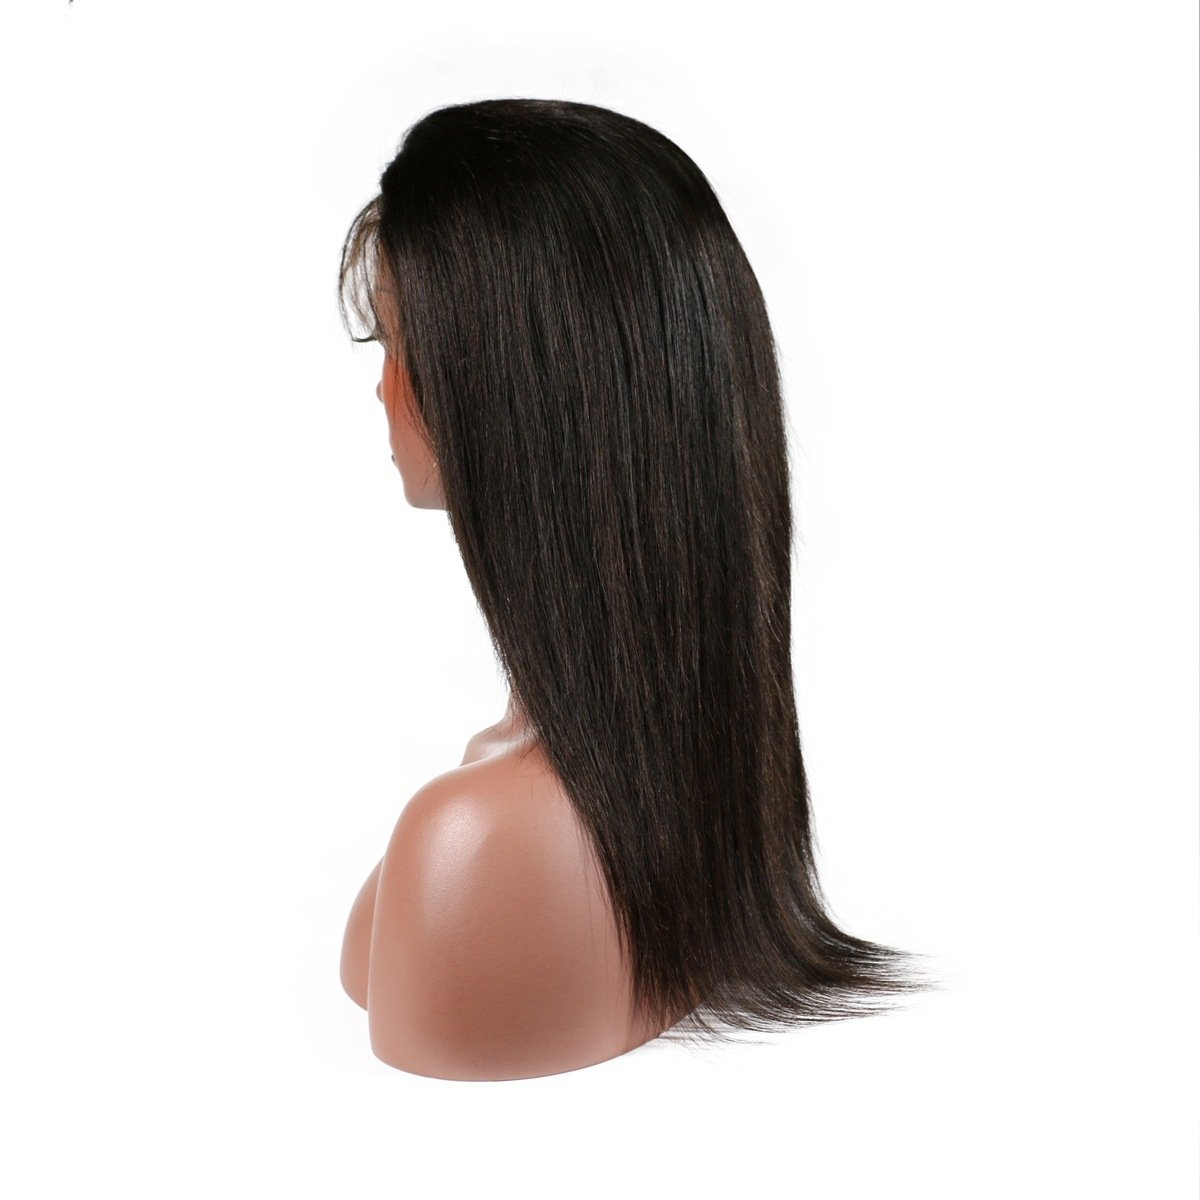 KeLang Brazilian Virgin Human Hair Lace Front Wigs for Black Women Long Straight Pre Plucked Glueless Human Hair Wigs With Baby Hair And Bleached knots 130% Density Natural Black color (Lace Front 16) by KeLang (Image #10)